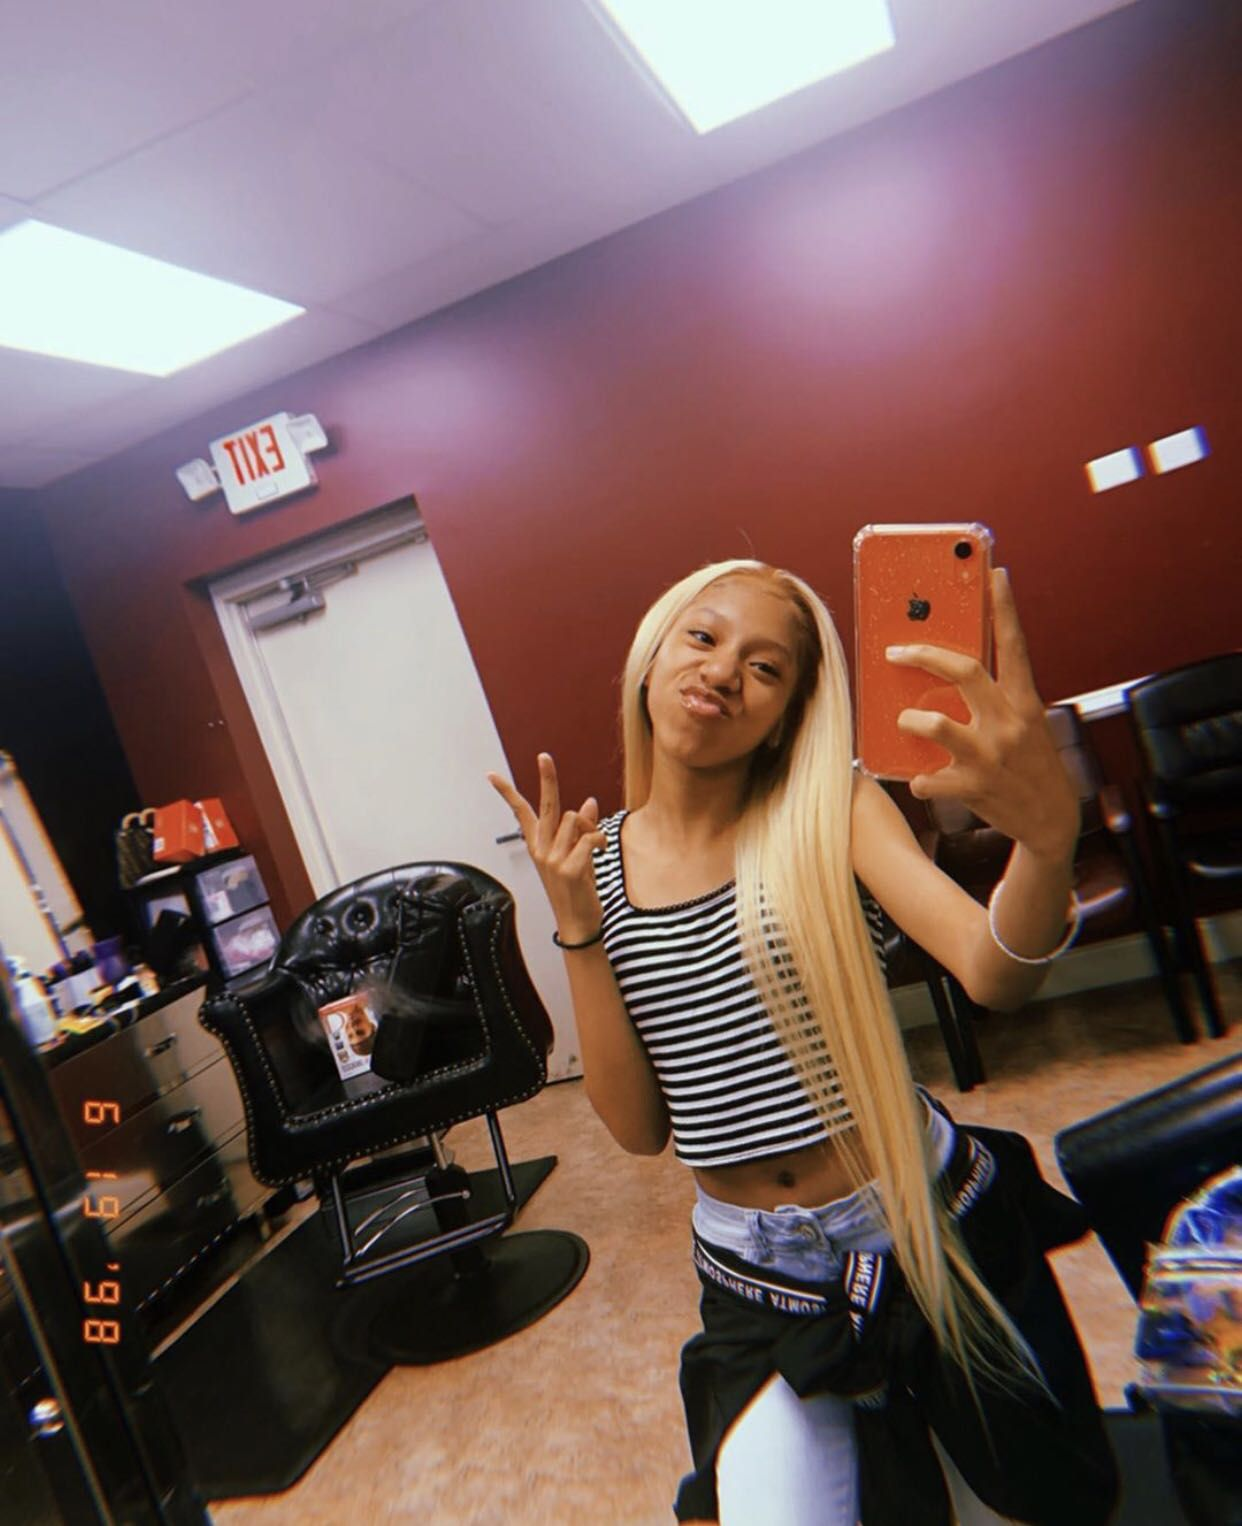 Temporary Time Nba Youngboy Fanfiction Chapter 1 1 Wattpad